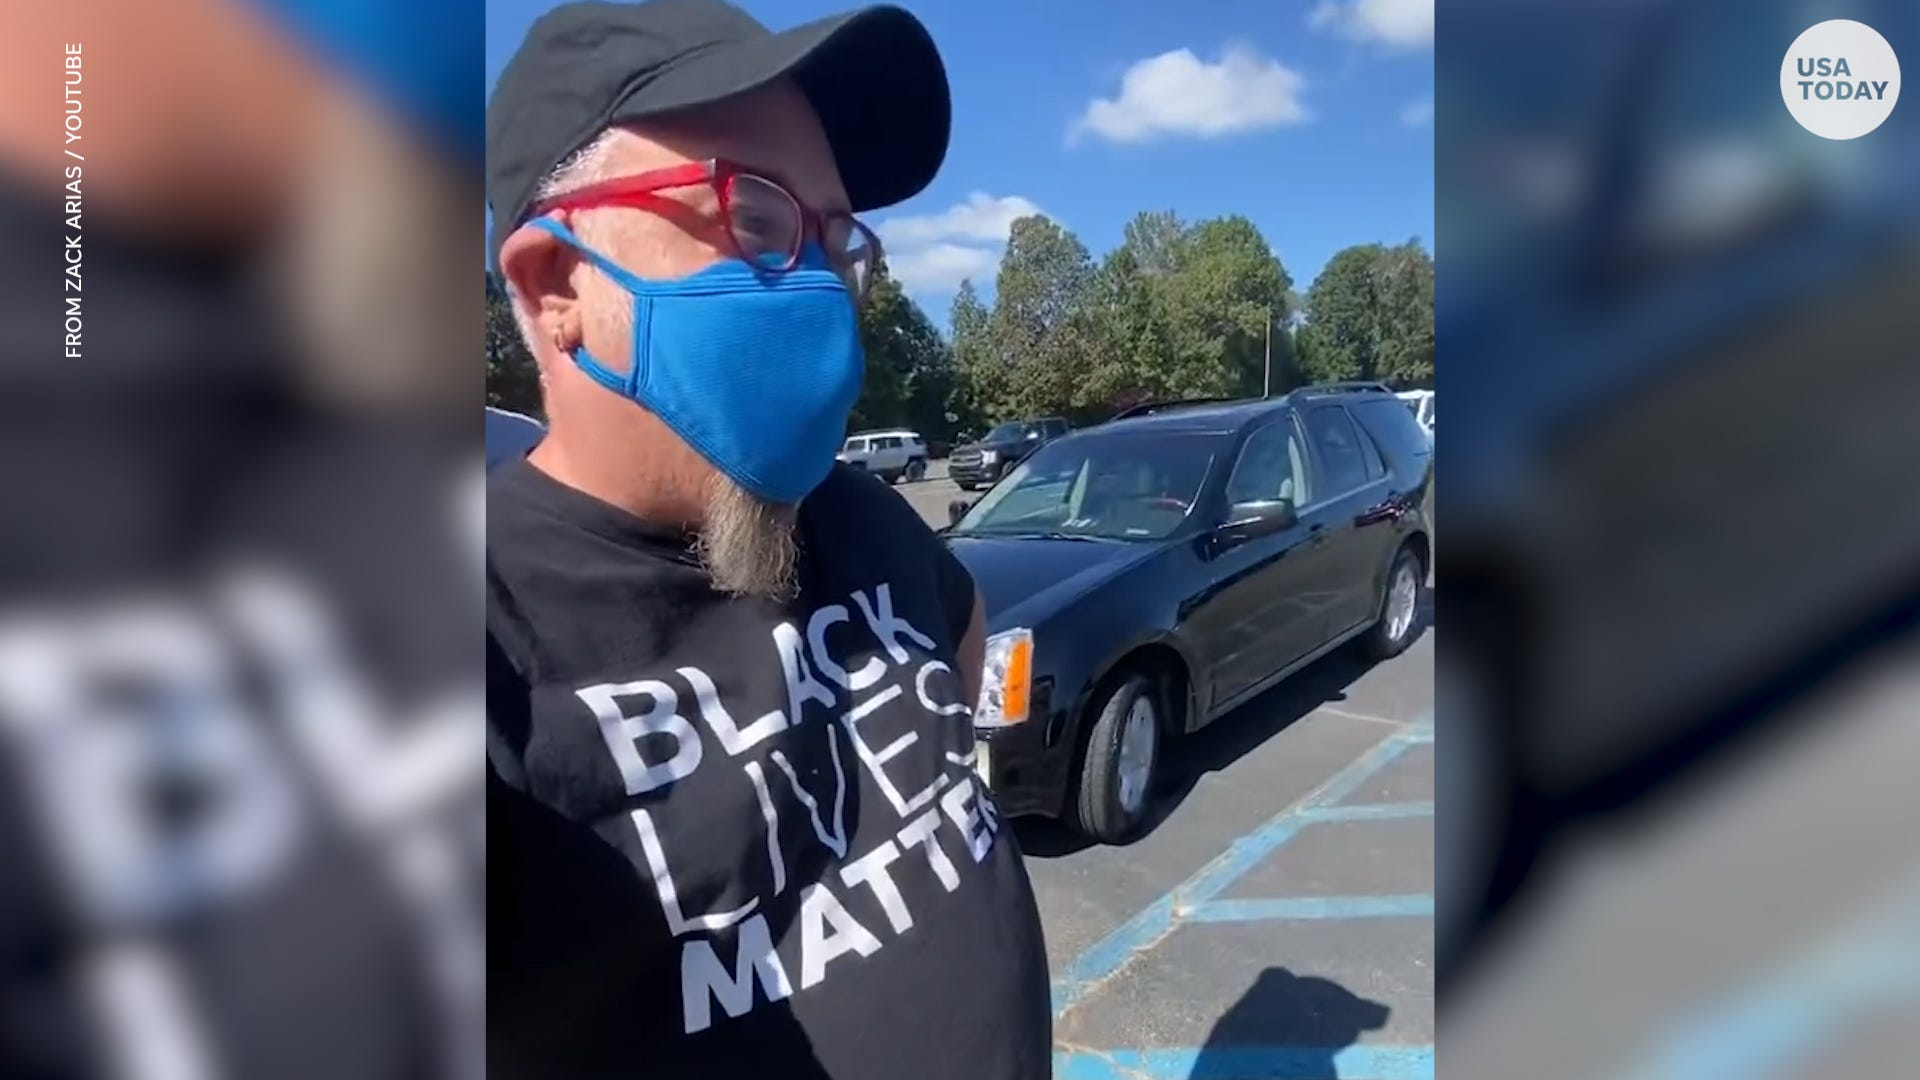 Georgia man wearing Black Lives Matter shirt told he must change his shirt before voting